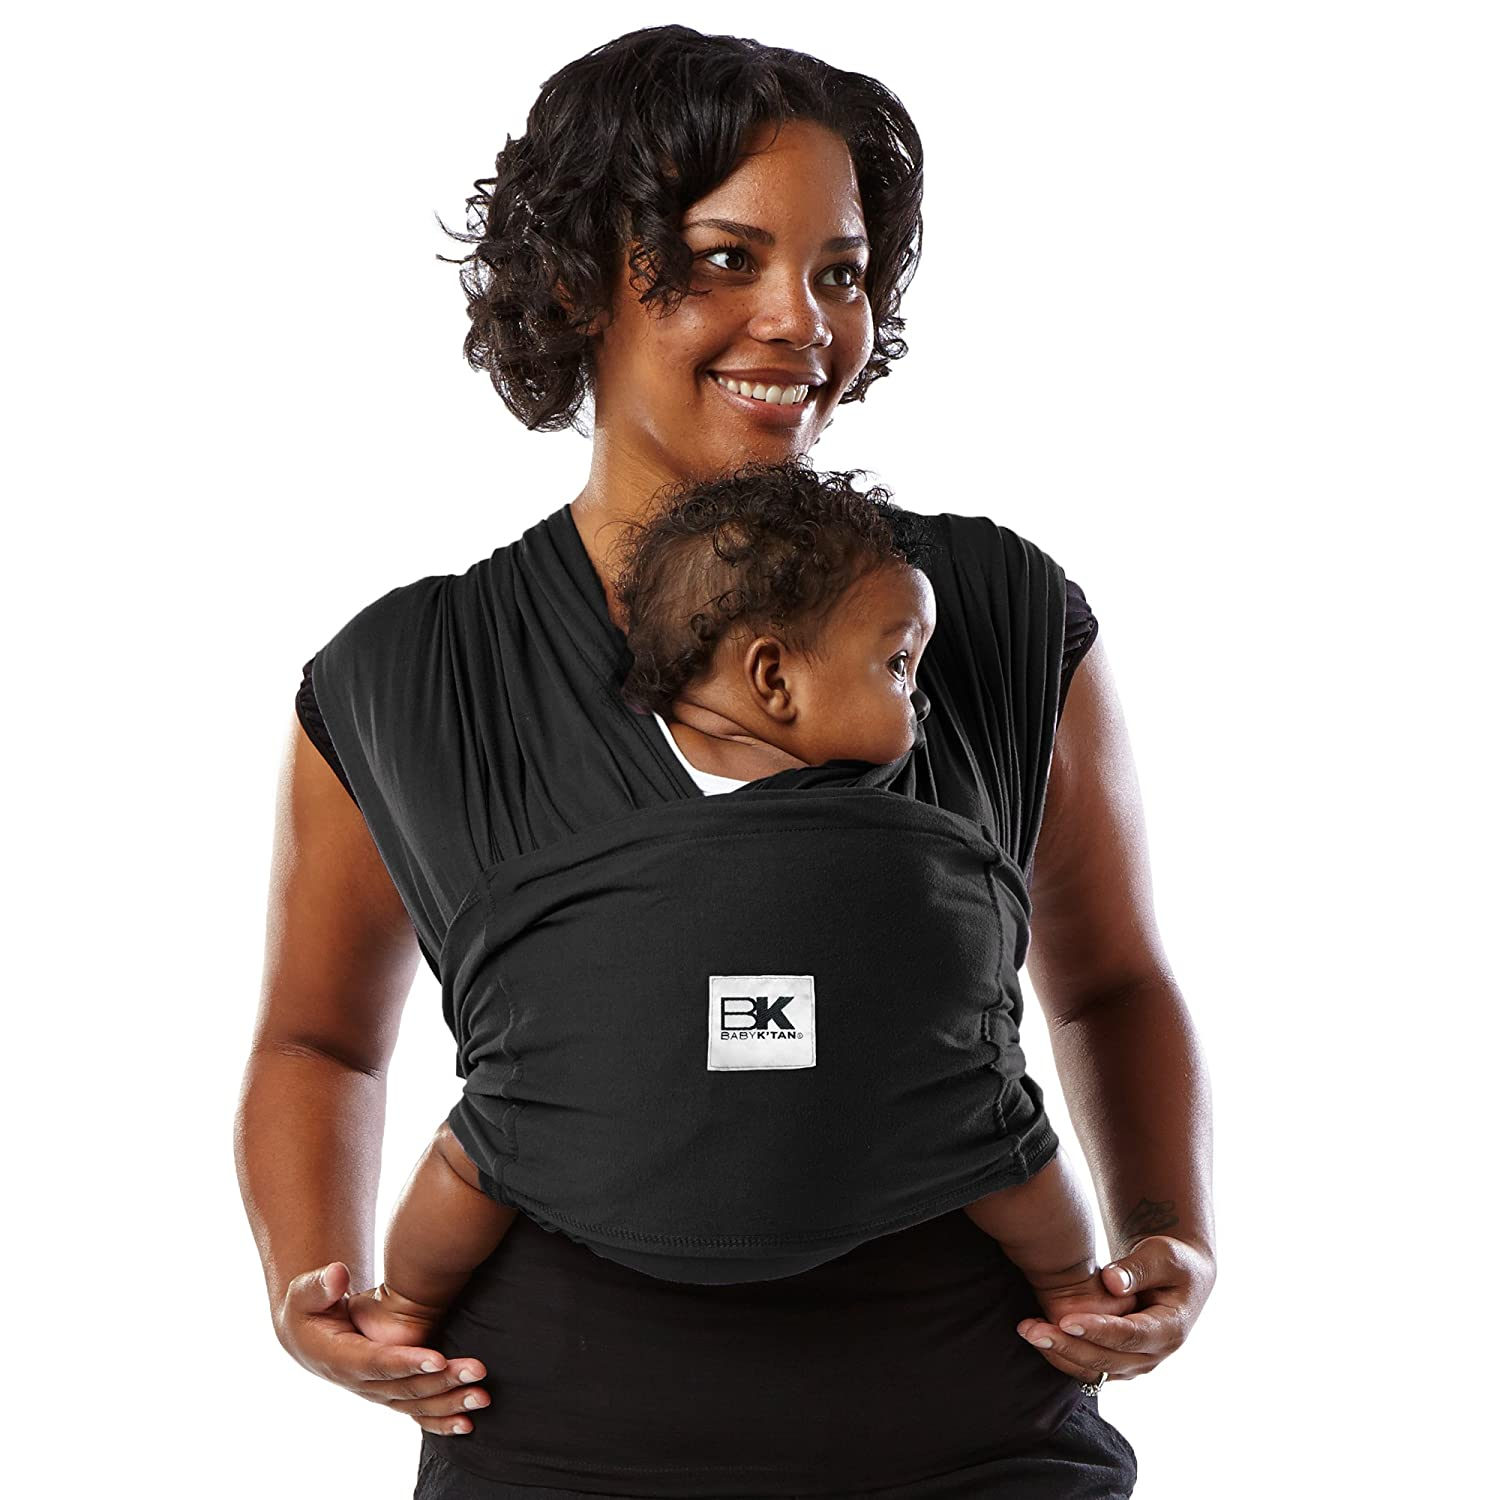 a76f5ee3ae ... Infant and Child Sling-Black L (W dress 16-20 / M jacket 43-46).  Newborn up to 35 lbs. Best for Babywearing. : Child Carrier Slings : Baby